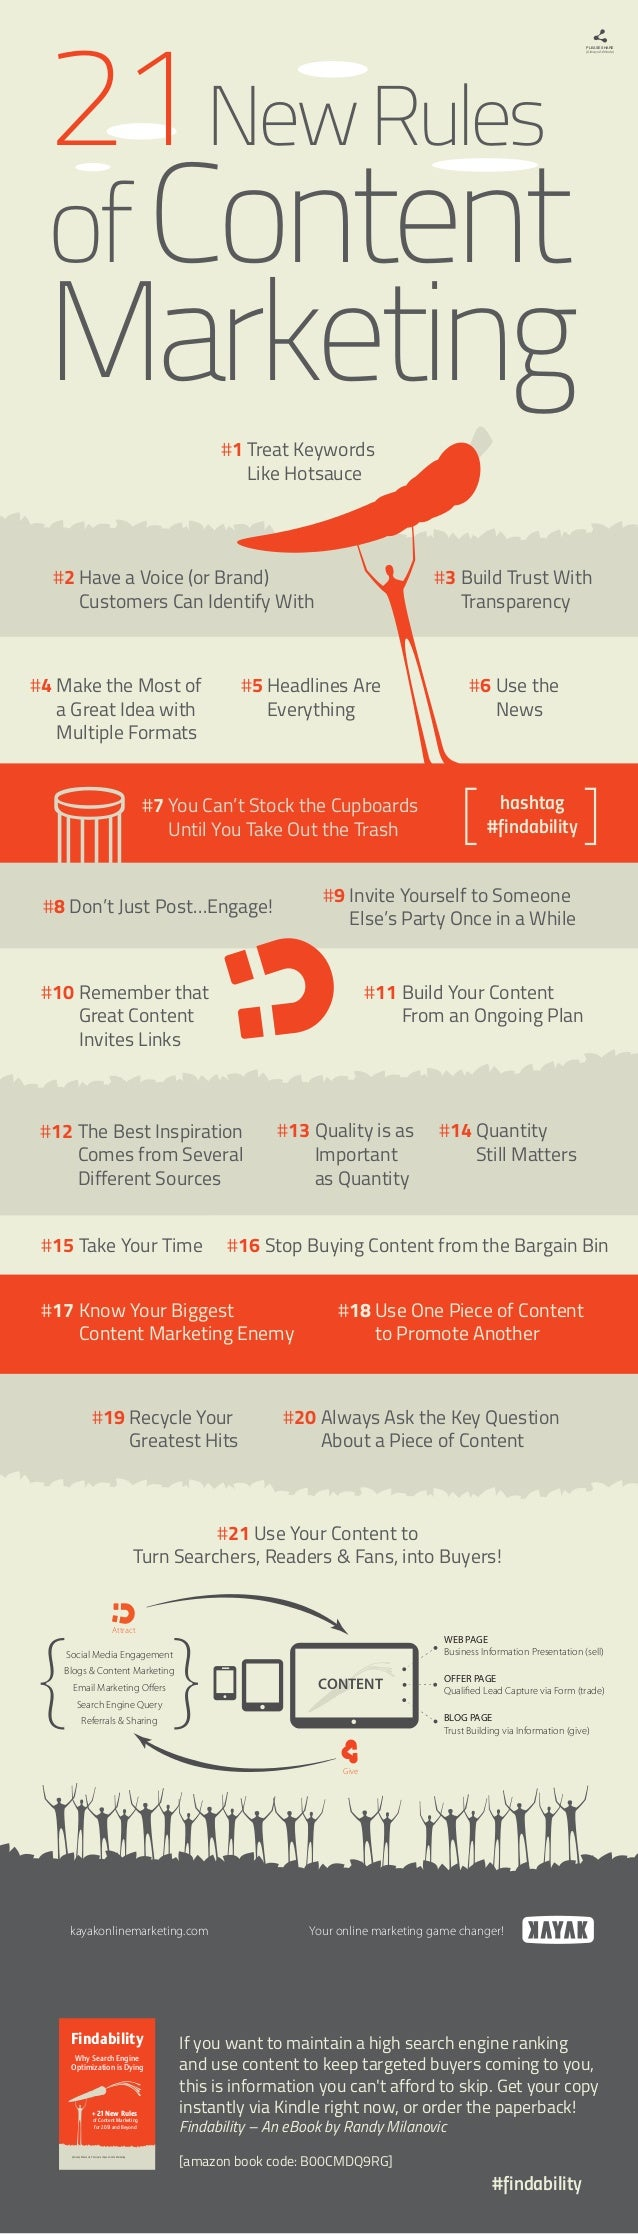 21NewRules ofContent Marketing WEB PAGE Business Information Presentation (sell) OFFER PAGE Qualified Lead Capture via For...